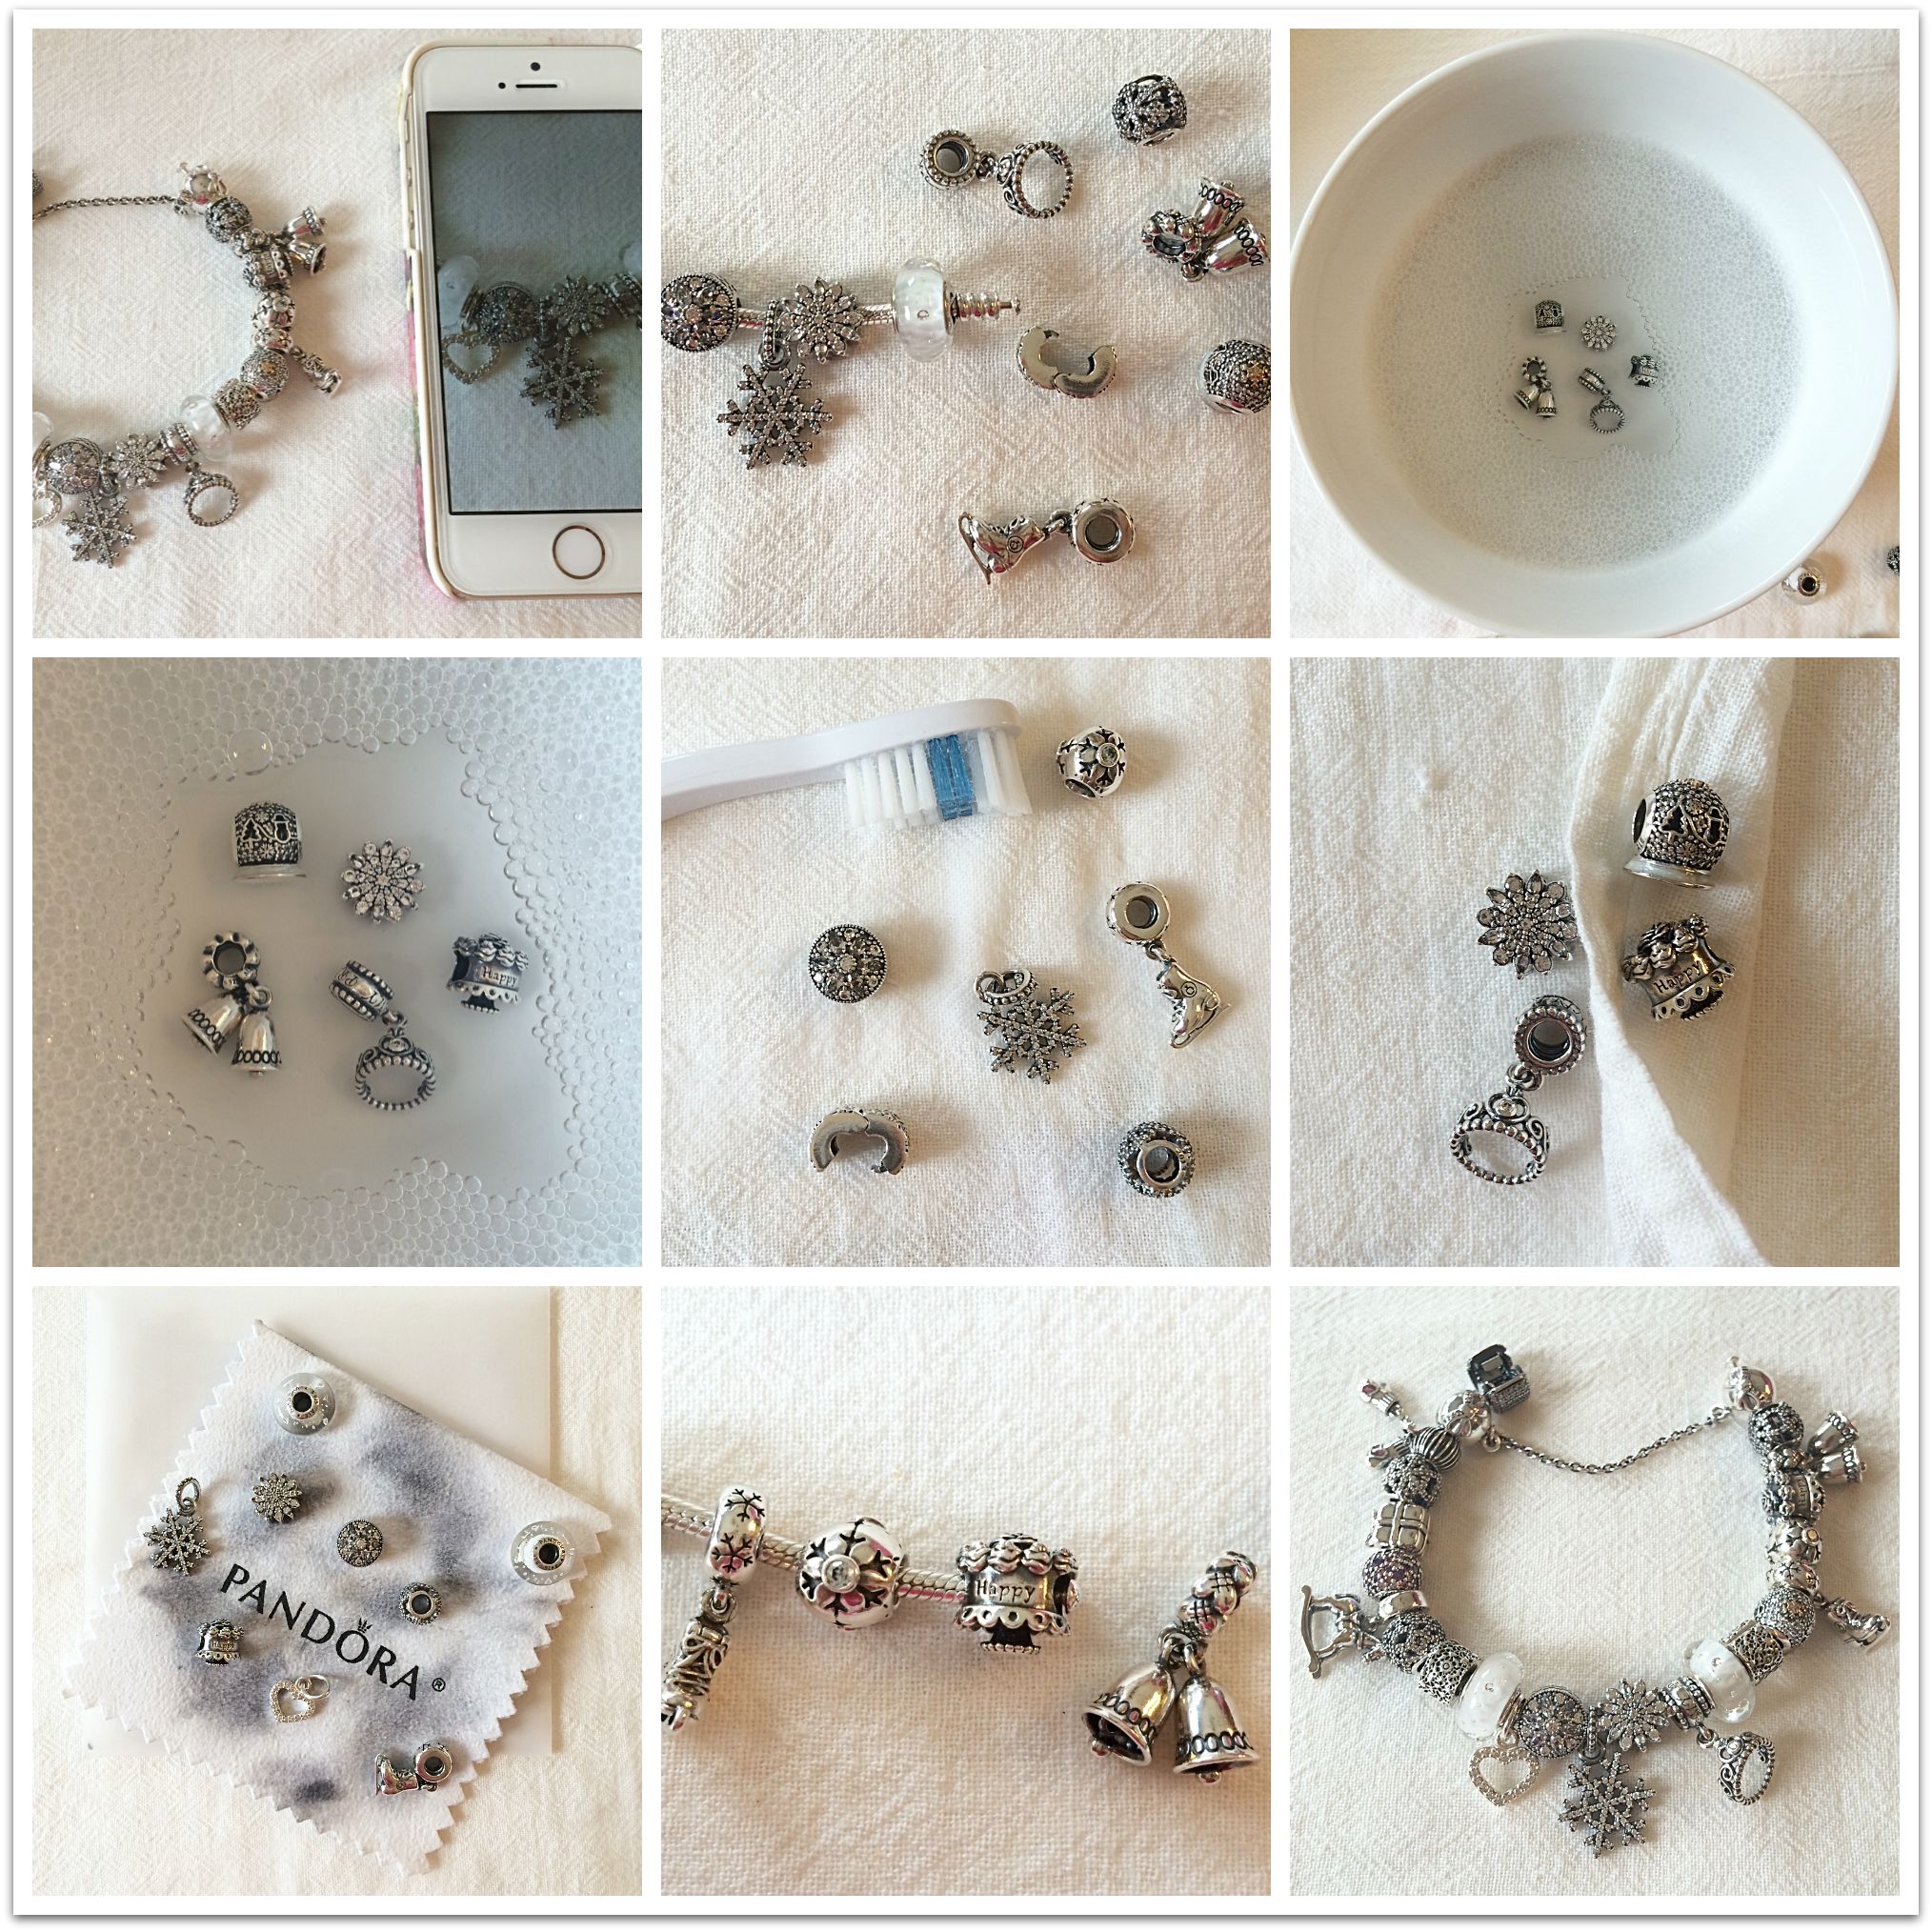 9 Steps To Cleaning Your Pandora Bracelet Midland